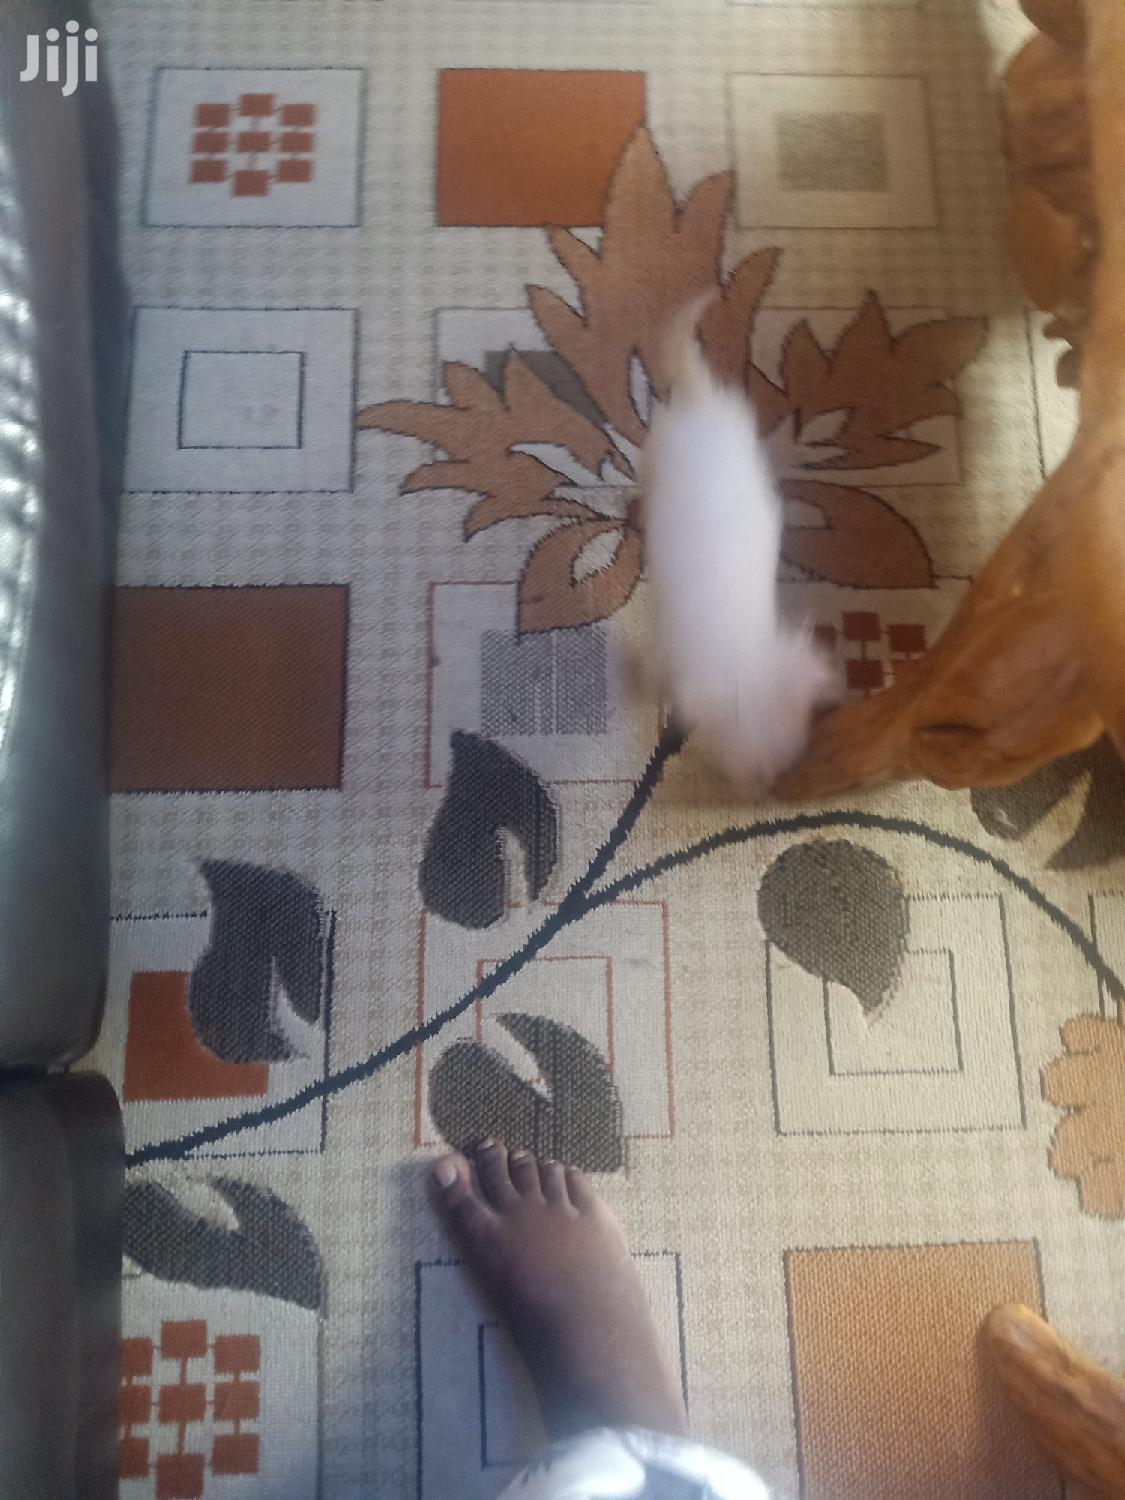 3-6 month Female Mixed Breed Maltese | Dogs & Puppies for sale in Nairobi Central, Nairobi, Kenya